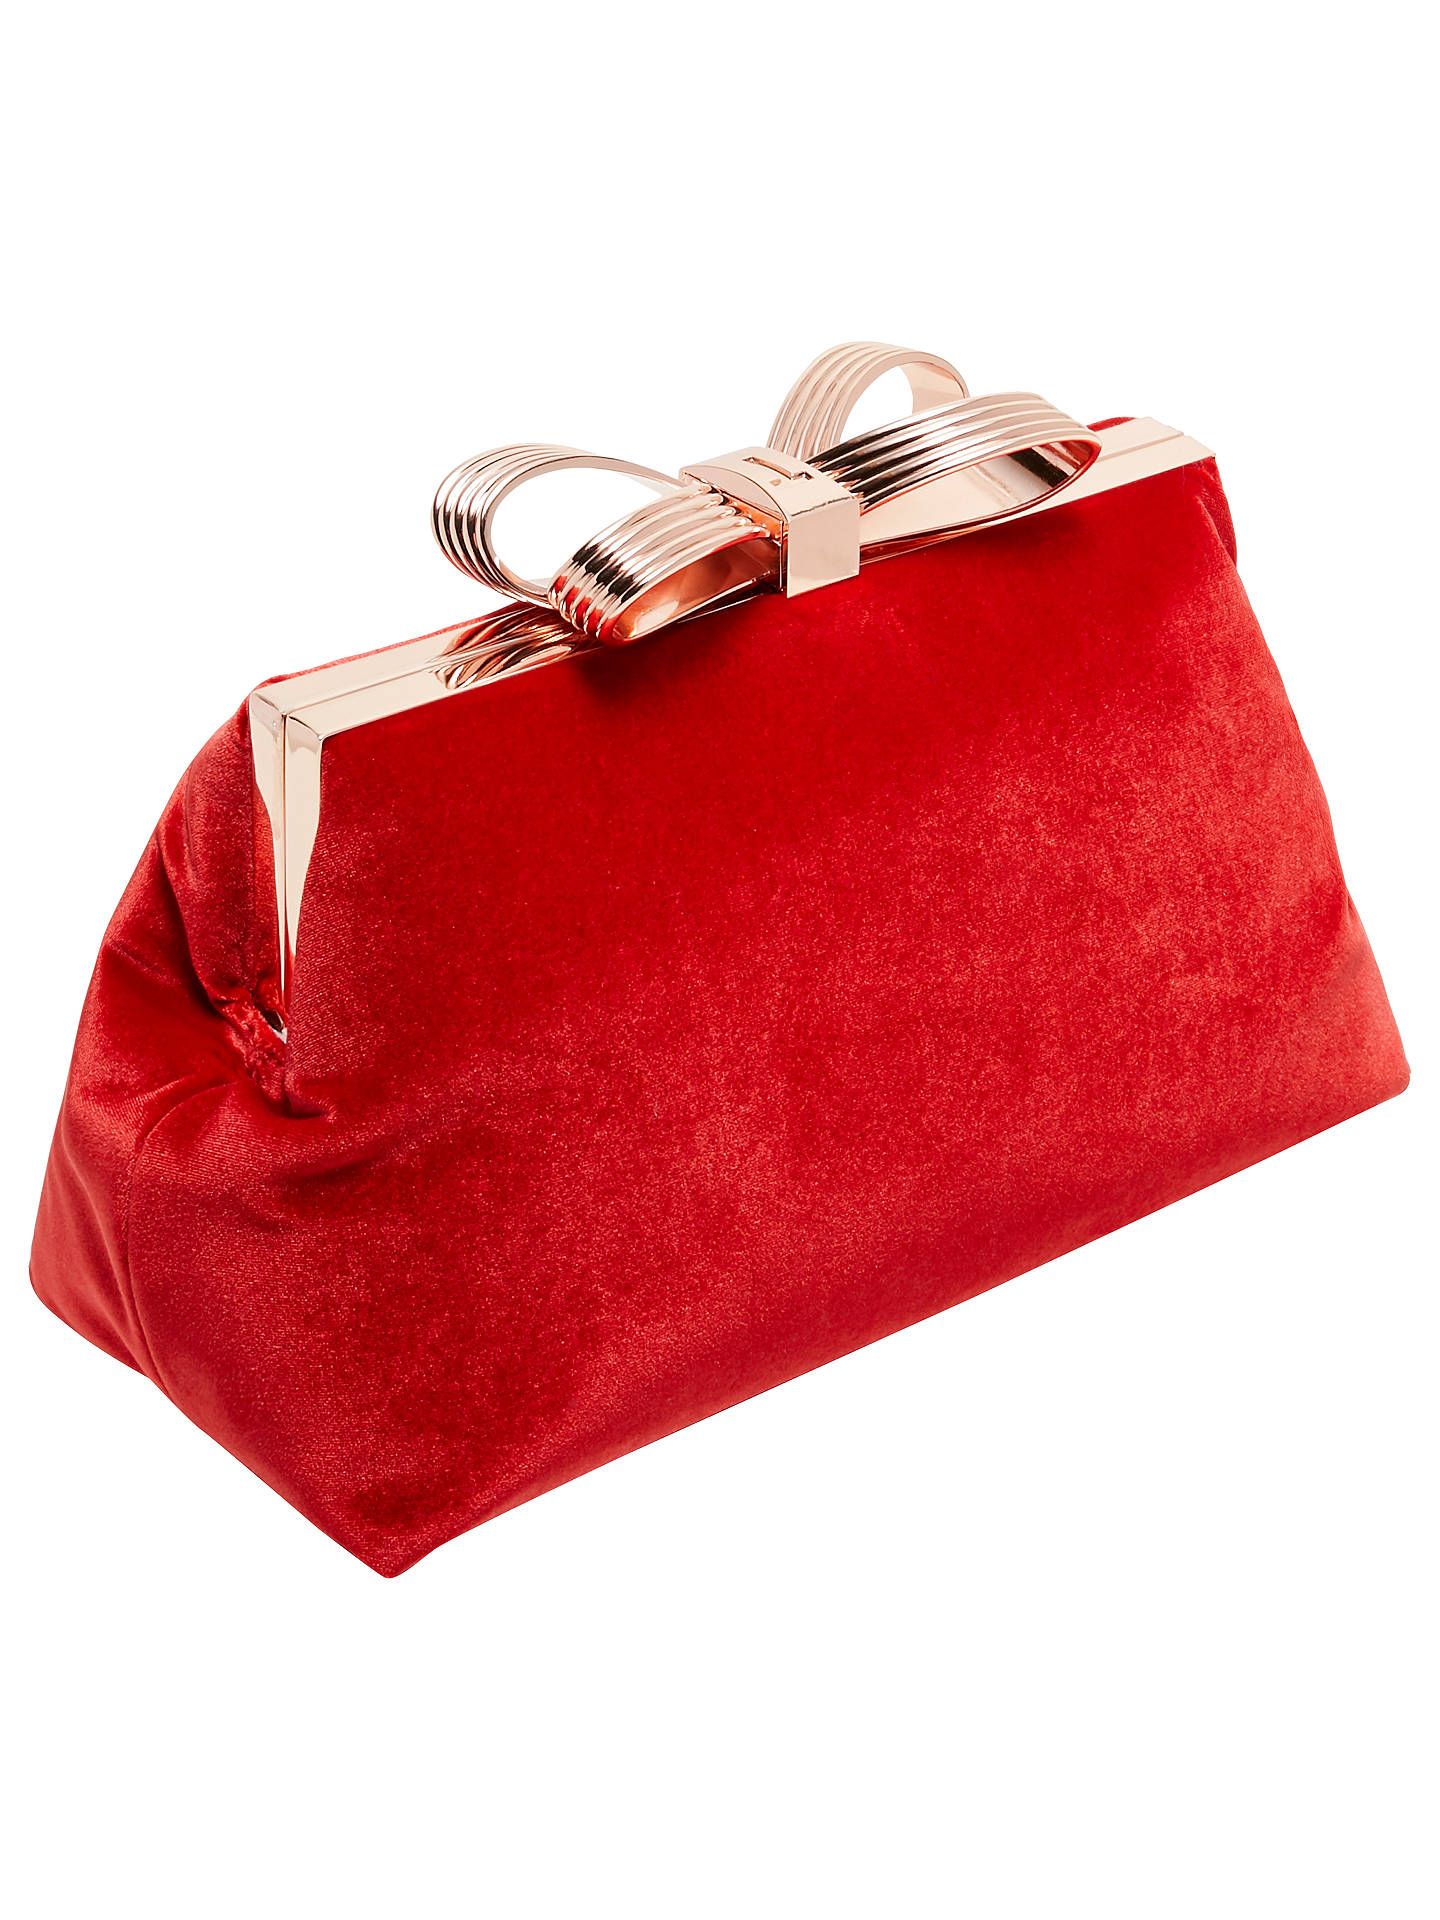 d36b5bc547 ... Buy Ted Baker Cena Bow Evening Clutch Bag, Bright Red Online at  johnlewis.com ...